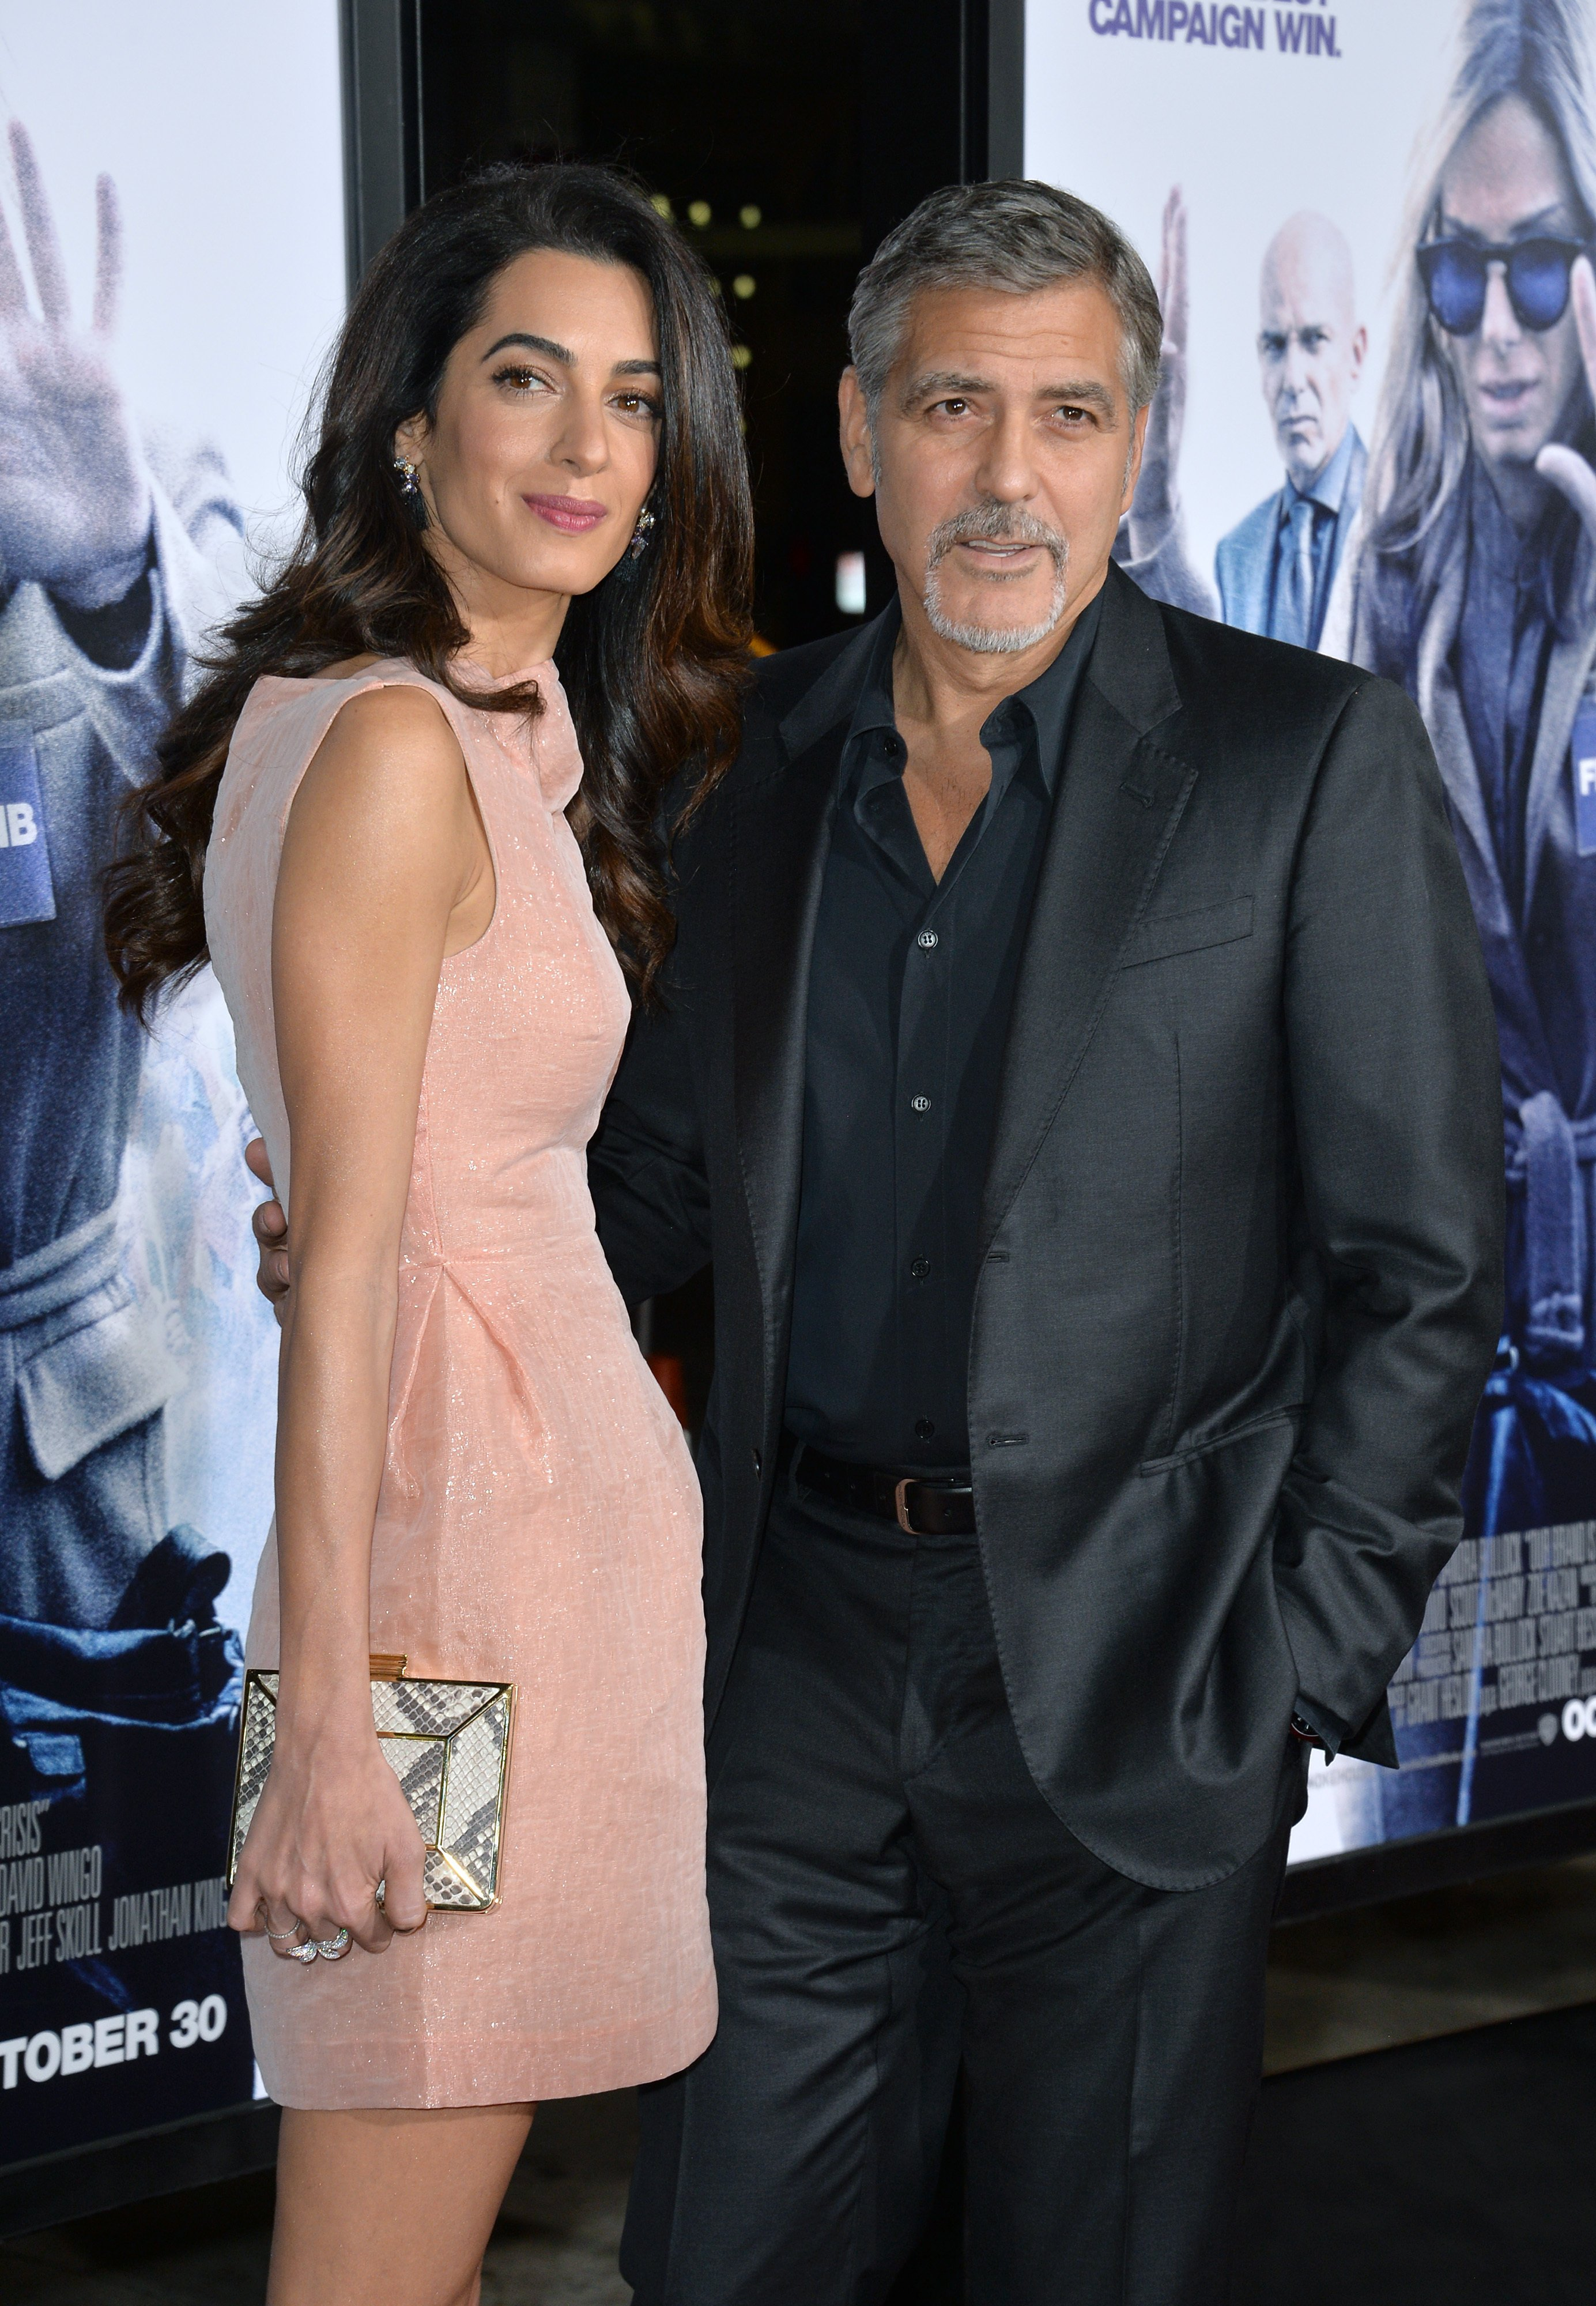 """Producer George Clooney & wife Amal Alamuddin at the premiere of his movie """"Our Brand is Crisis"""" at the TCL Chinese Theatre, Hollywood on October 26, 2015: Source: Shutterstock"""